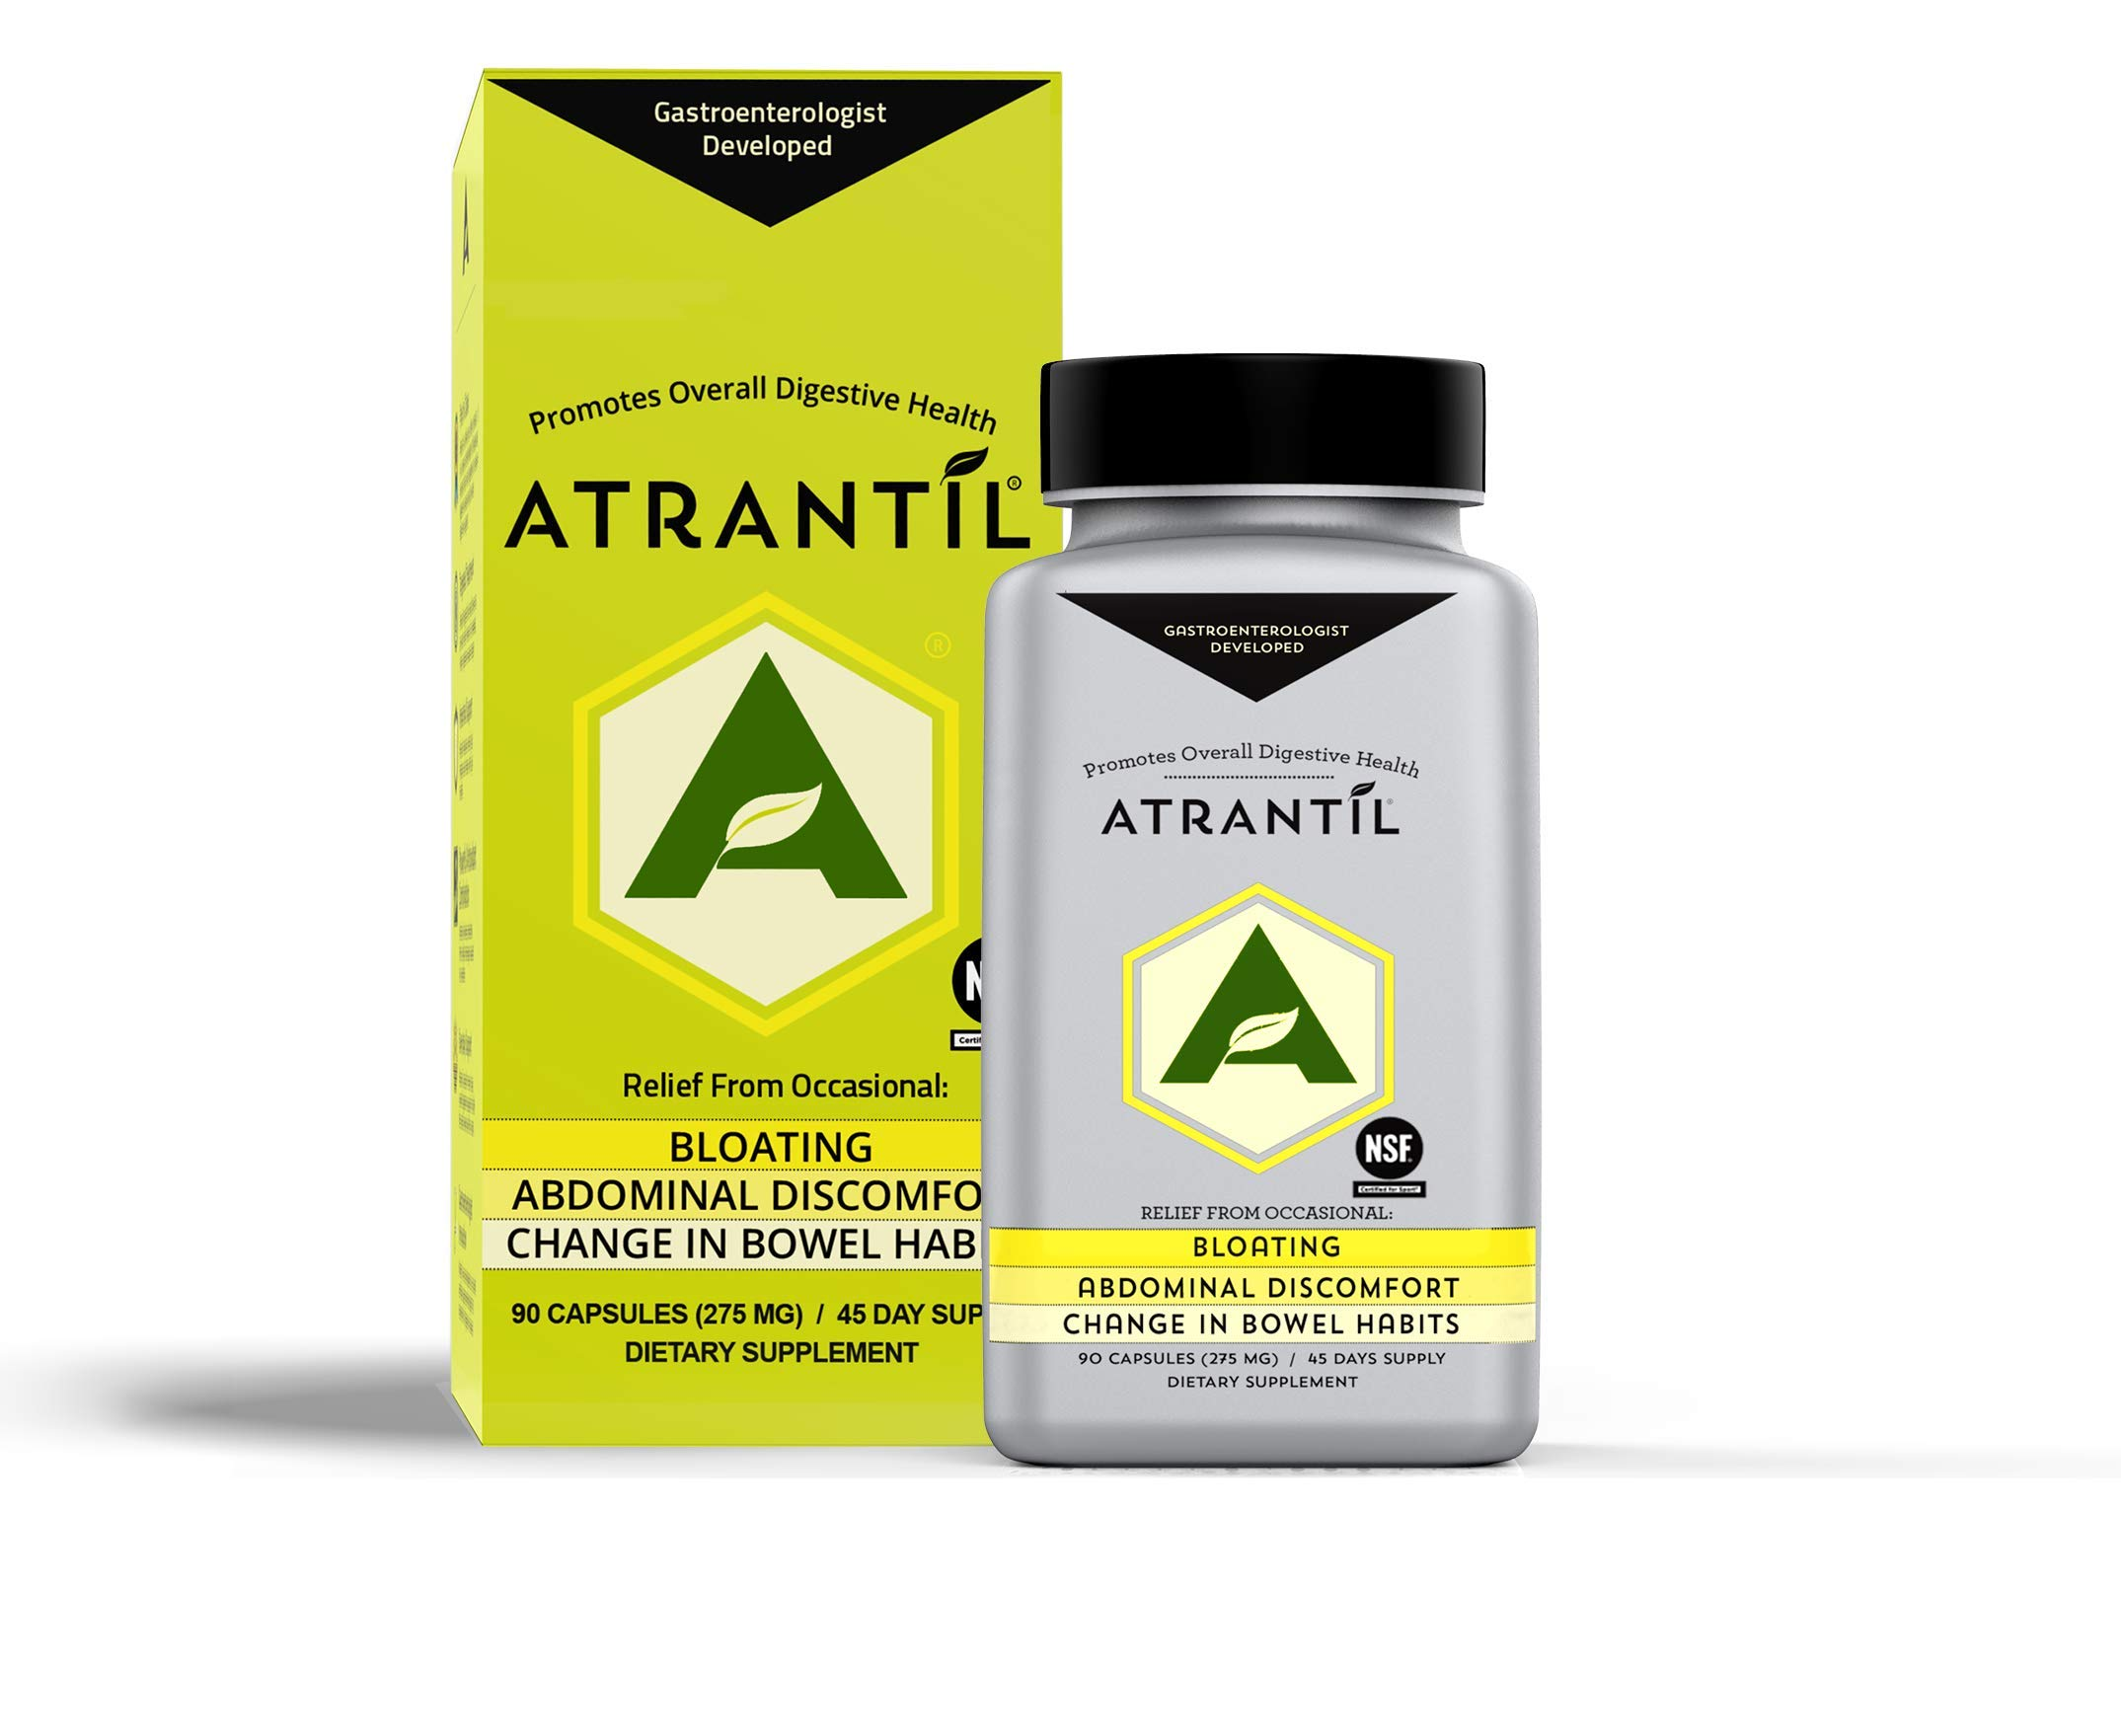 Atrantil (90 Clear Caps): Bloating, Abdominal Discomfort, Change in Bowel Habits, and Everyday Digestive Health by Atrantil